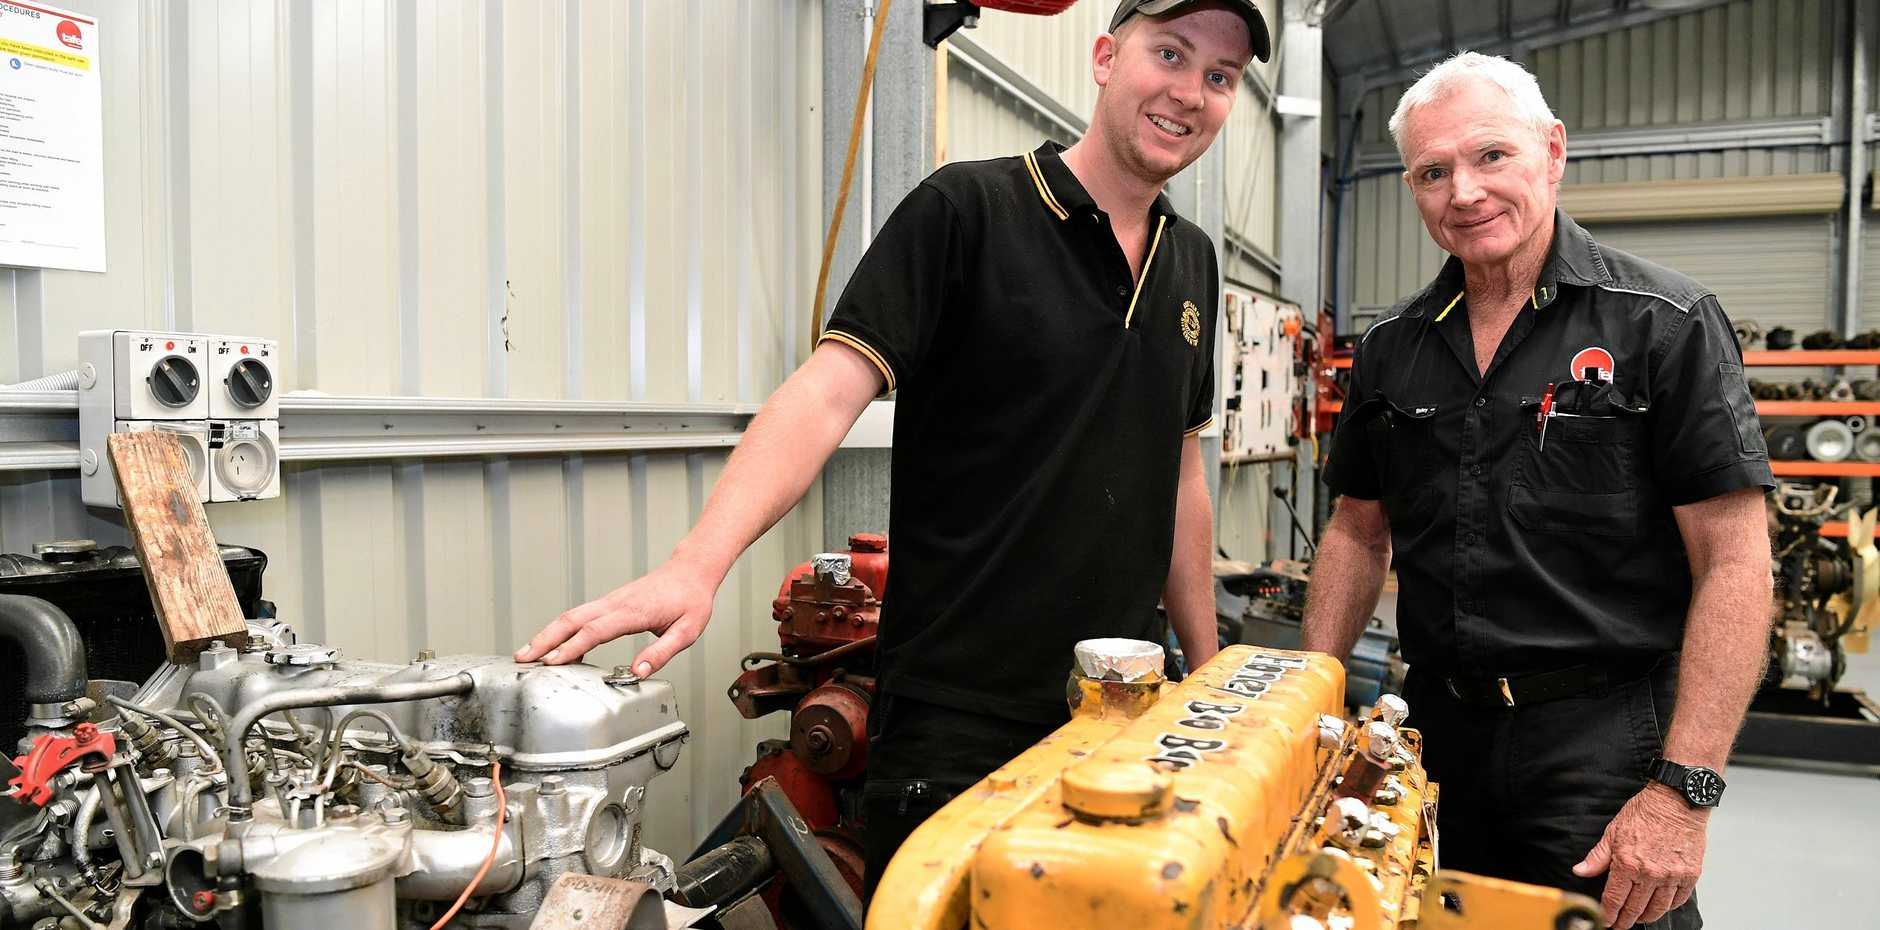 ON THE JOB: First year apprentice Callum McIntosh and Tafe automotive trainer Ian Walsh.